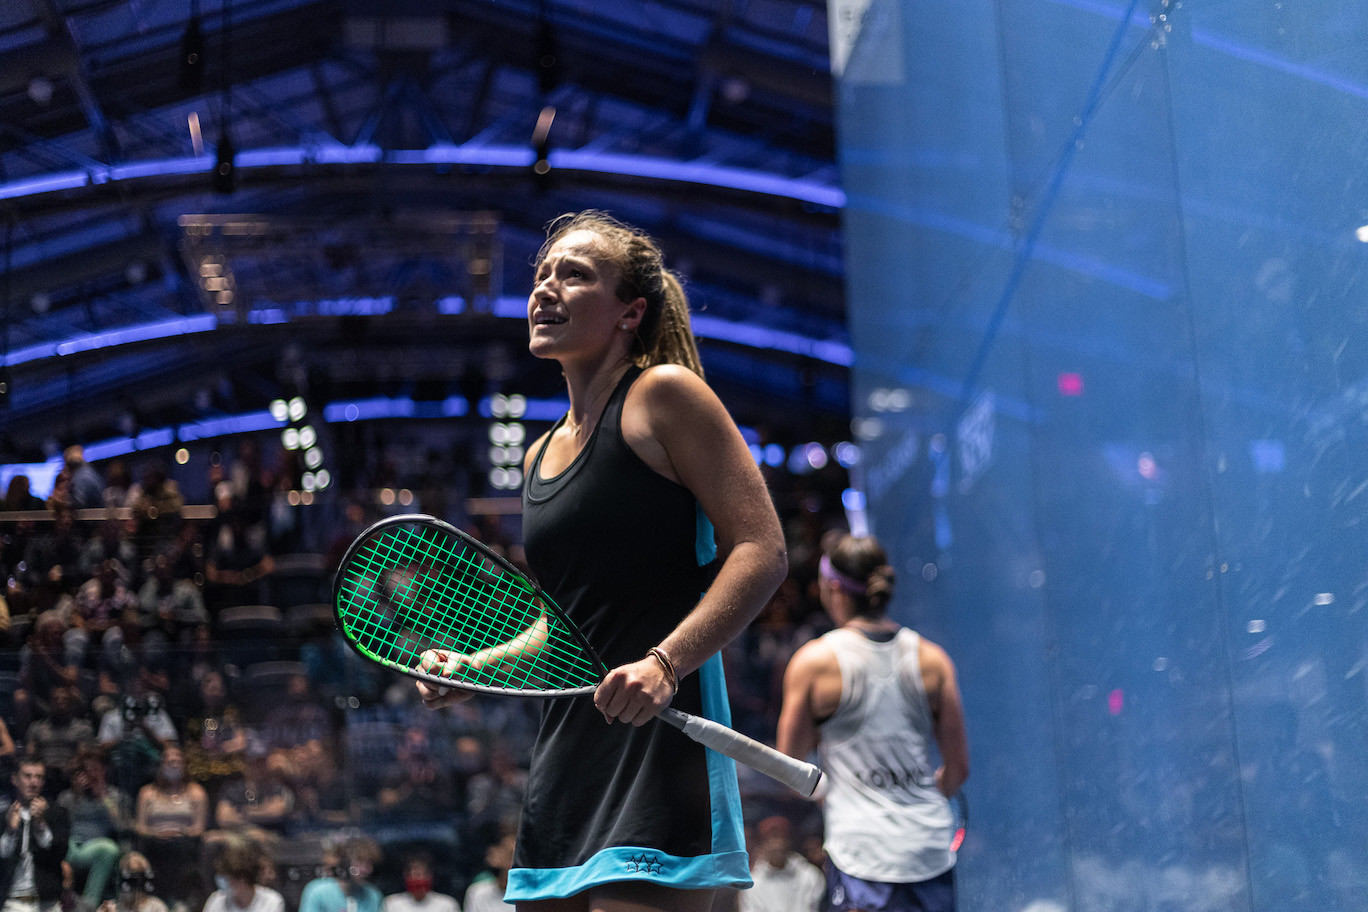 Fiechter stuns Sobhy at US Open squash while Willstrop's run continues